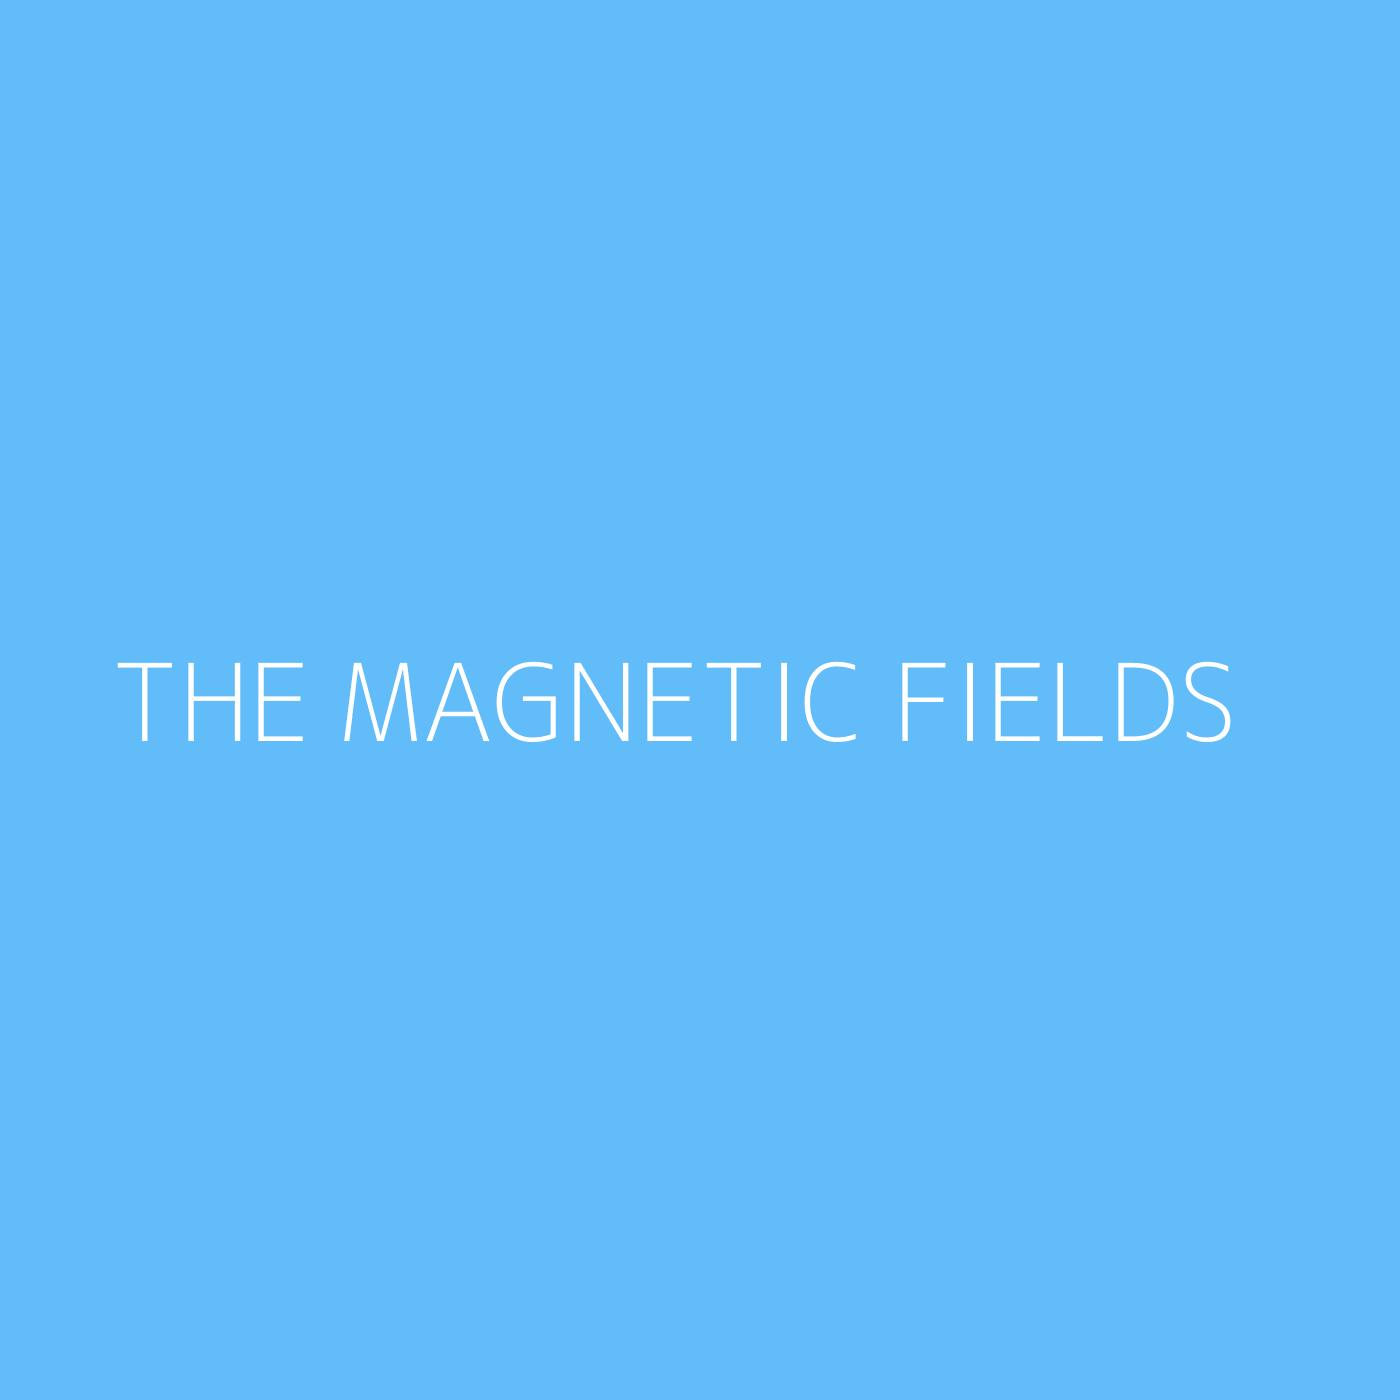 The Magnetic Fields Playlist Artwork